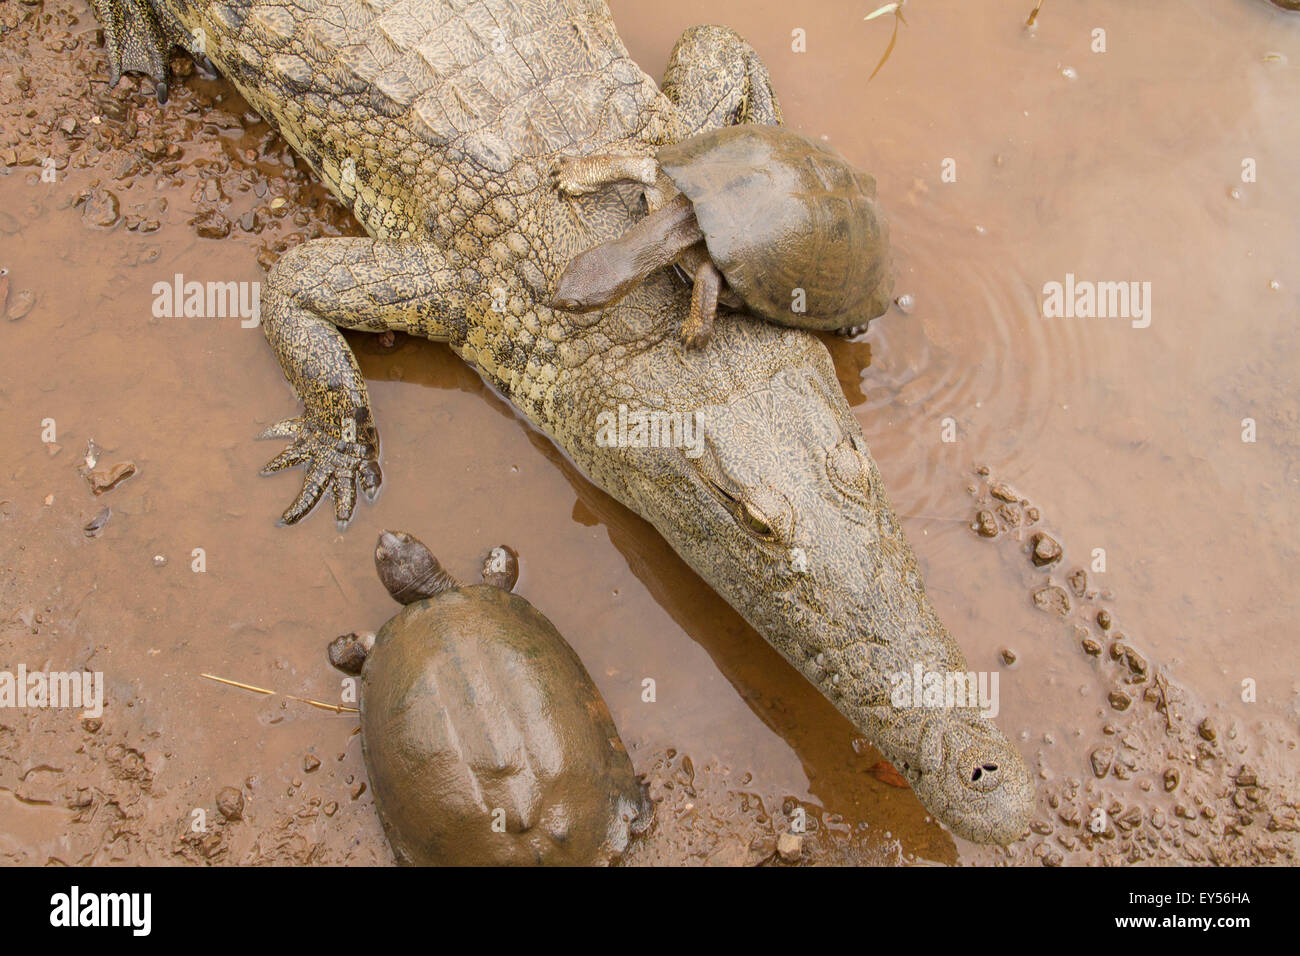 East African serrated mud turtle and Crocodile - Kruger - Stock Image